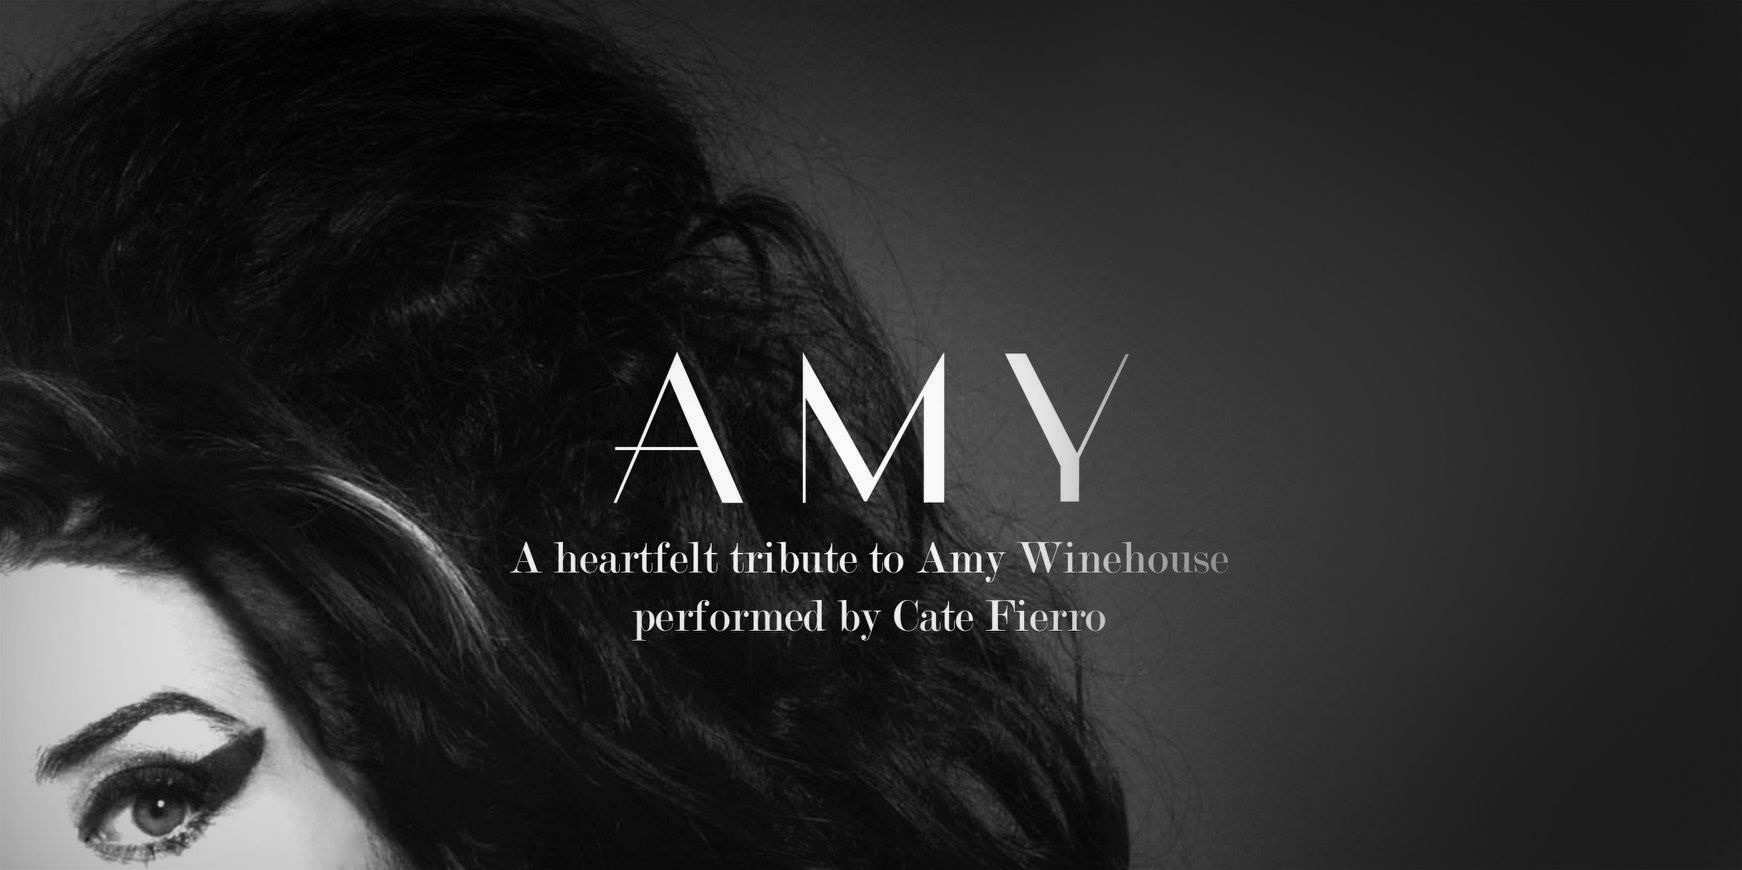 AMY - A heartfelt Tribute to Amy winehouse - Starring Cate Fierro